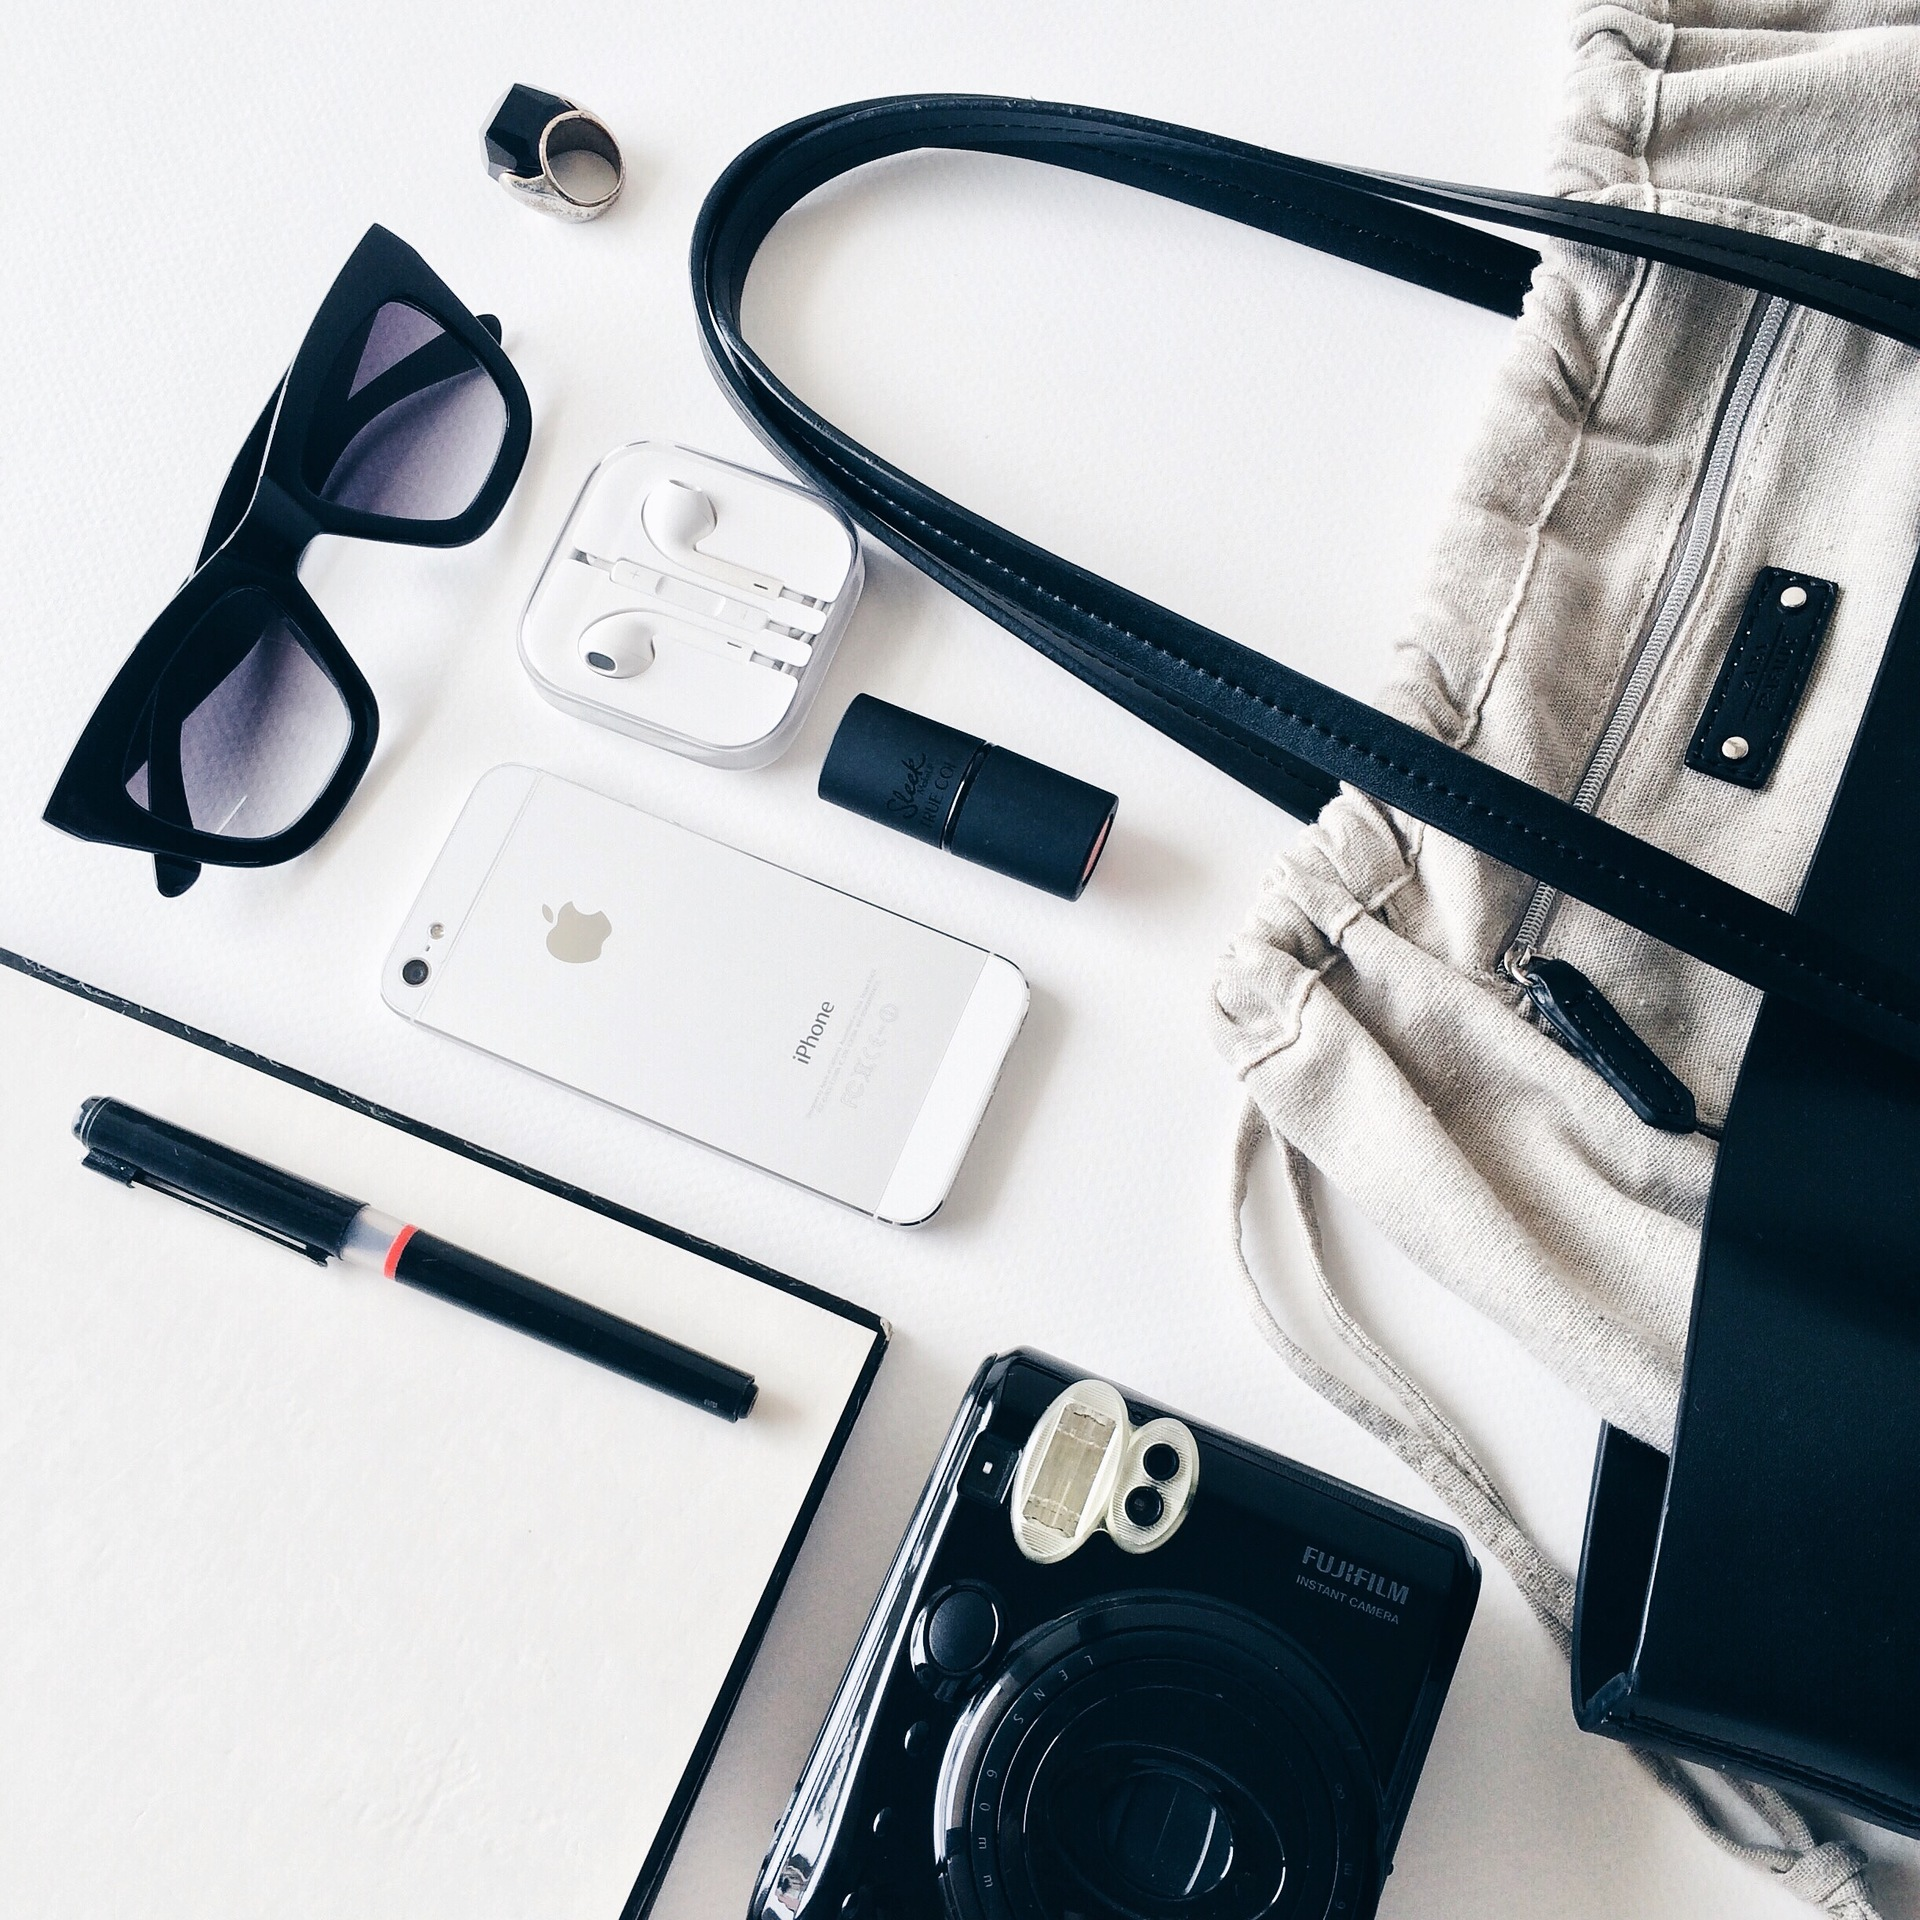 Awesome fashion flat lays with modern black and white items.